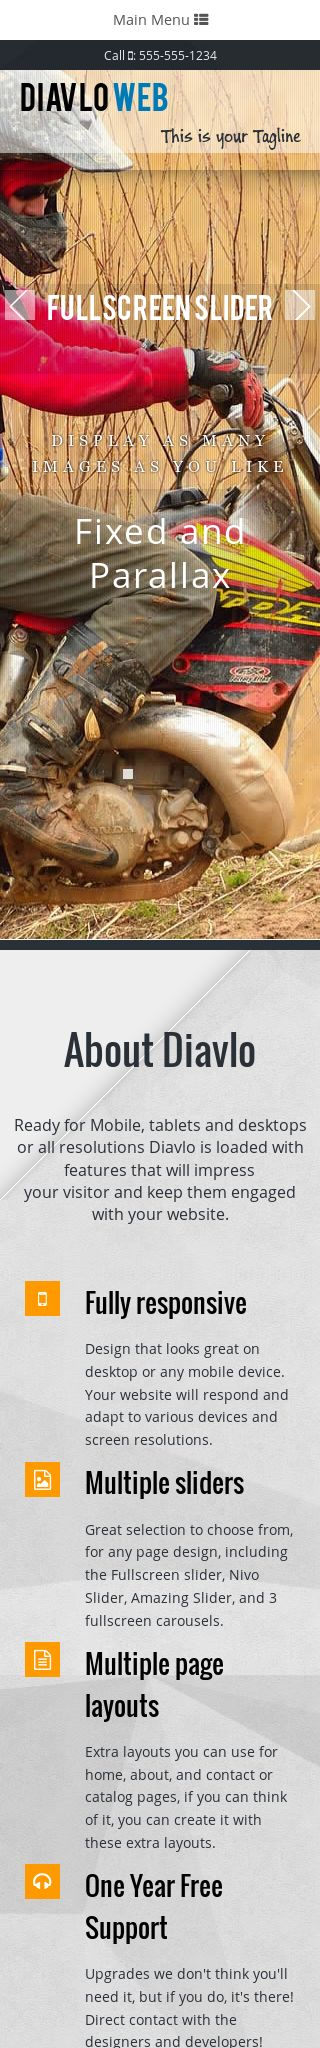 Mobile: Motocross Web Template